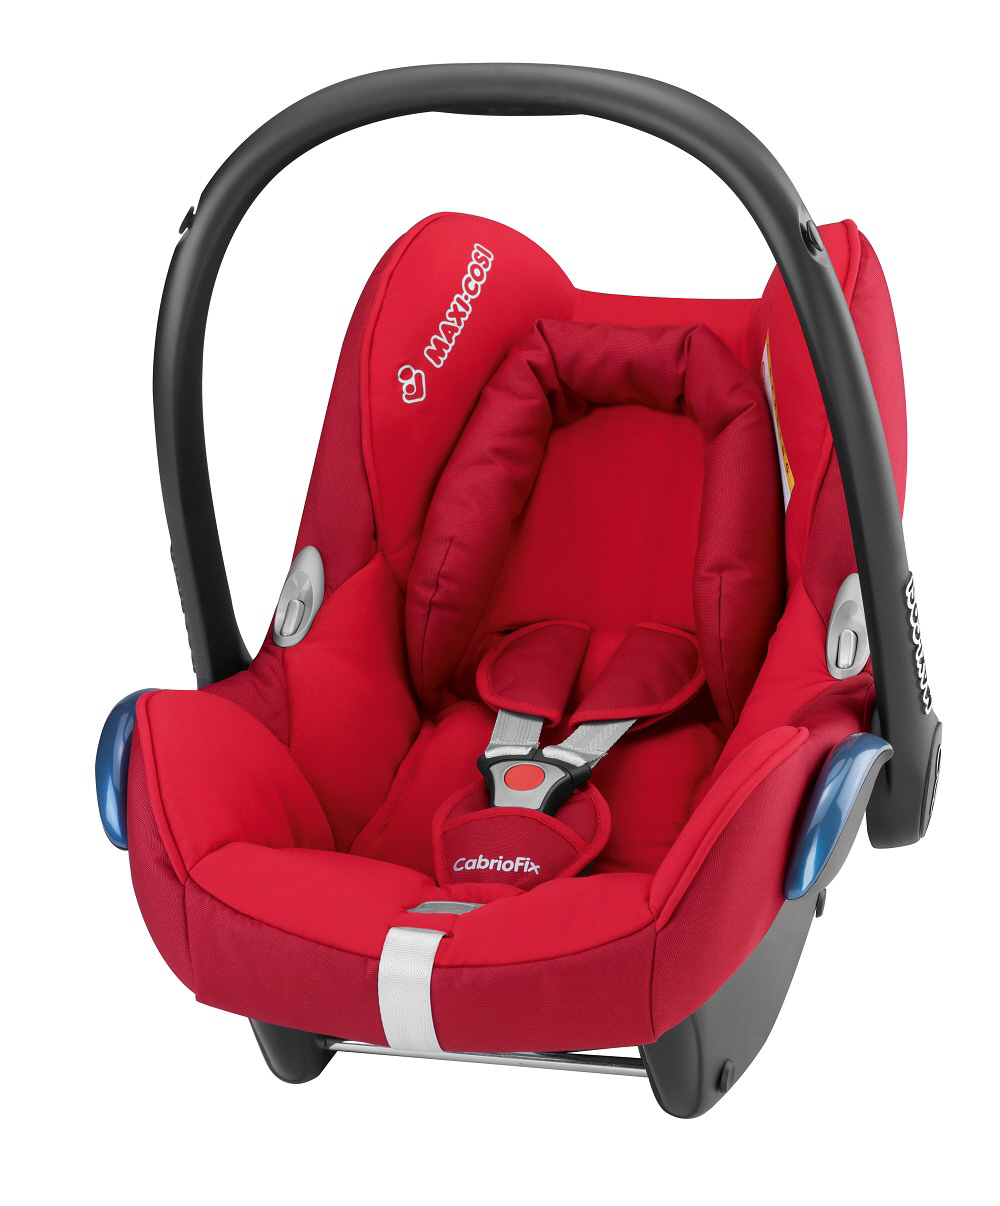 maxi cosi infant car seat cabriofix 2013 intense red buy at kidsroom car seats. Black Bedroom Furniture Sets. Home Design Ideas